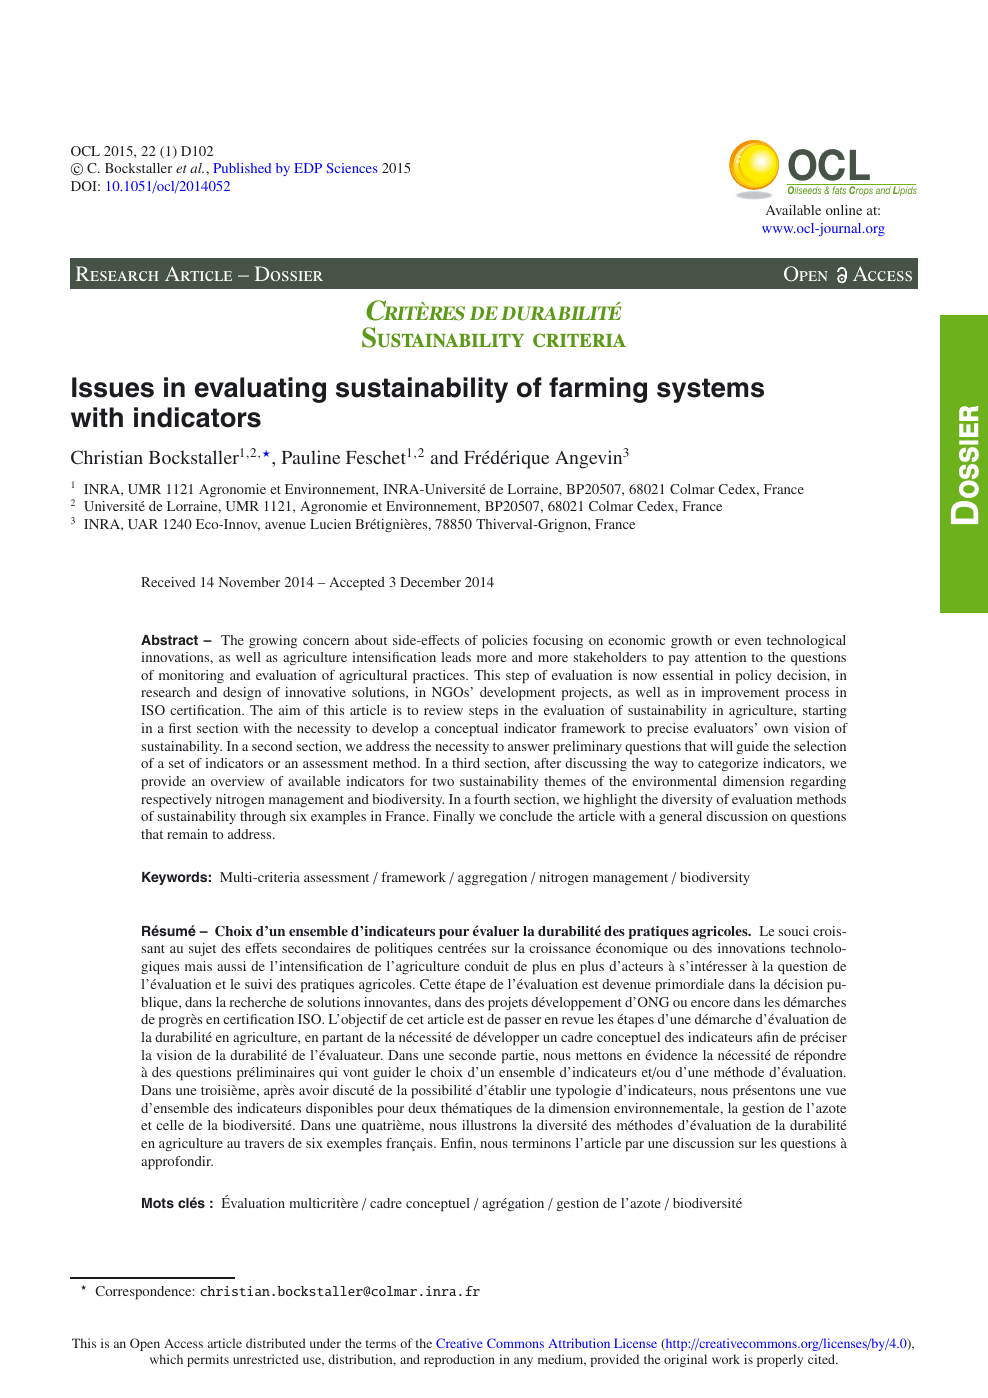 Issues in evaluating sustainability of farming systems with